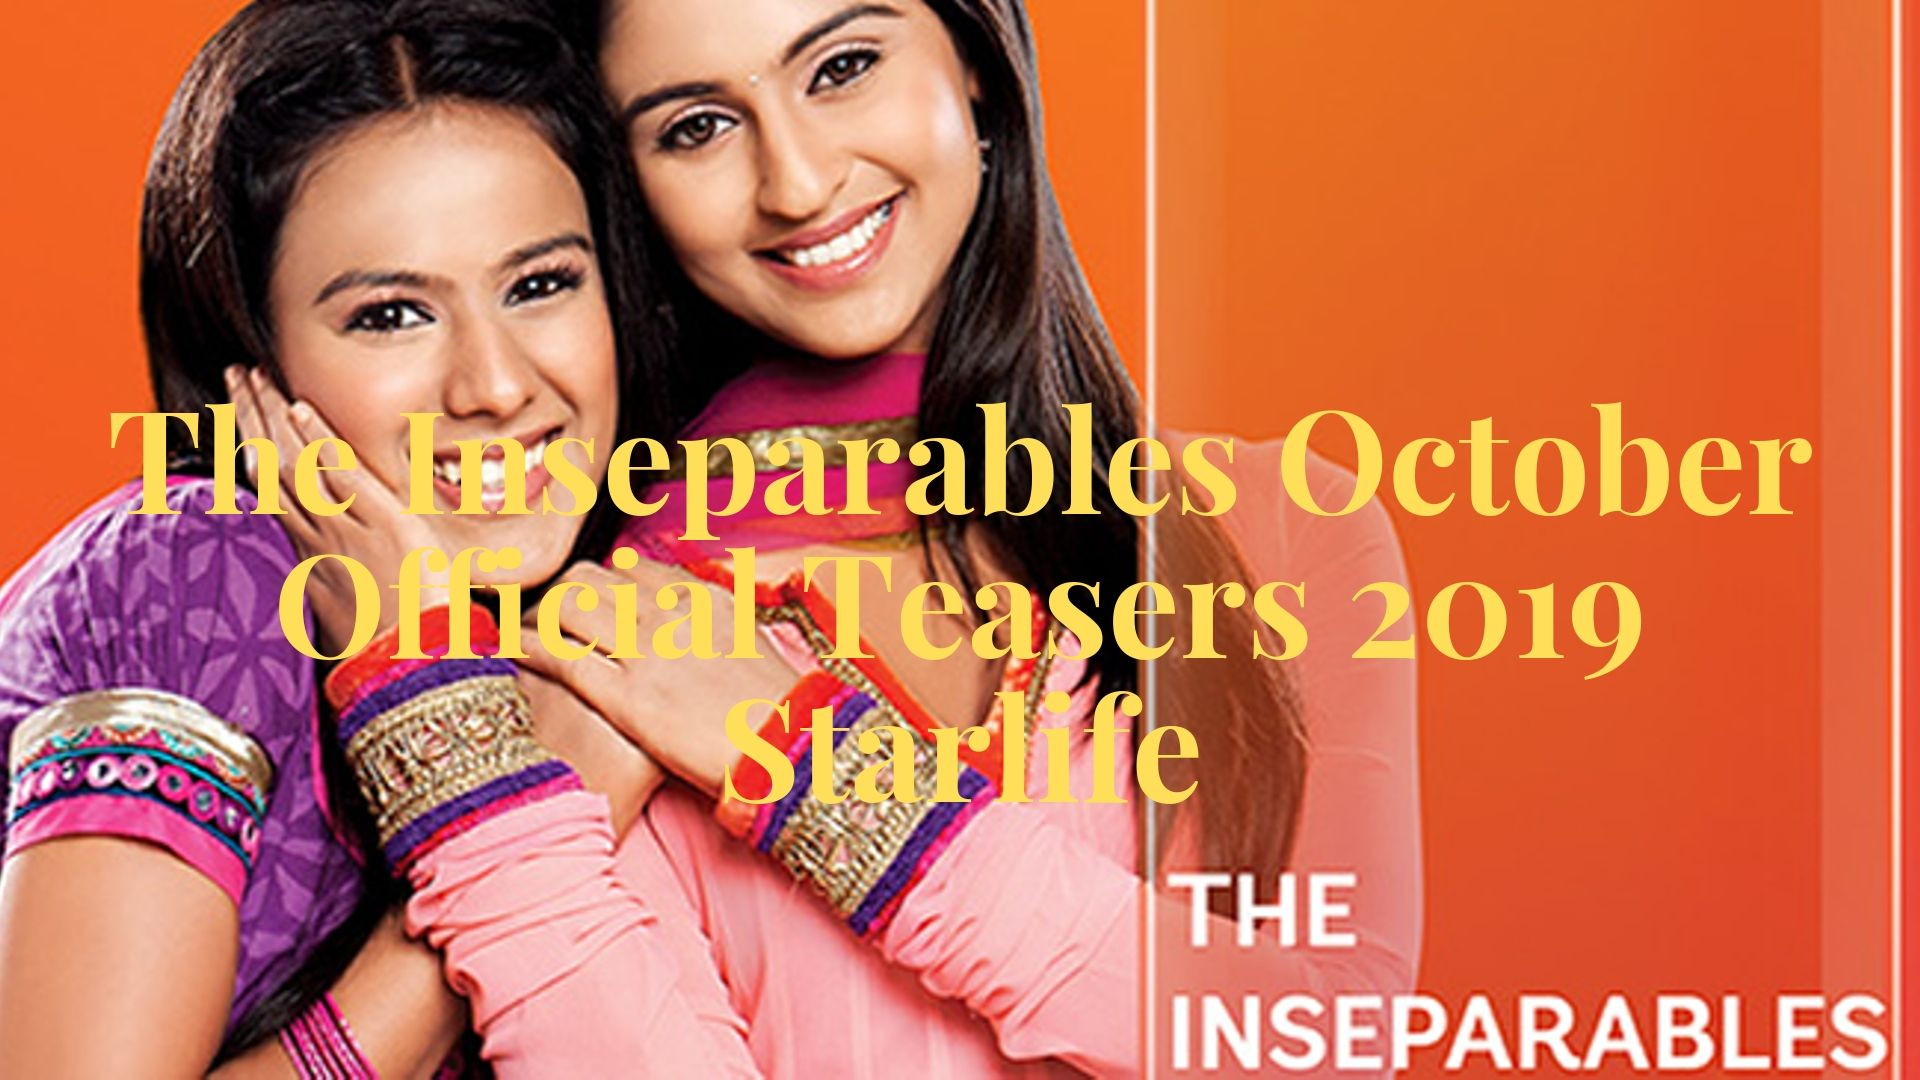 The Inseparables October Official Teasers 2019 Starlife